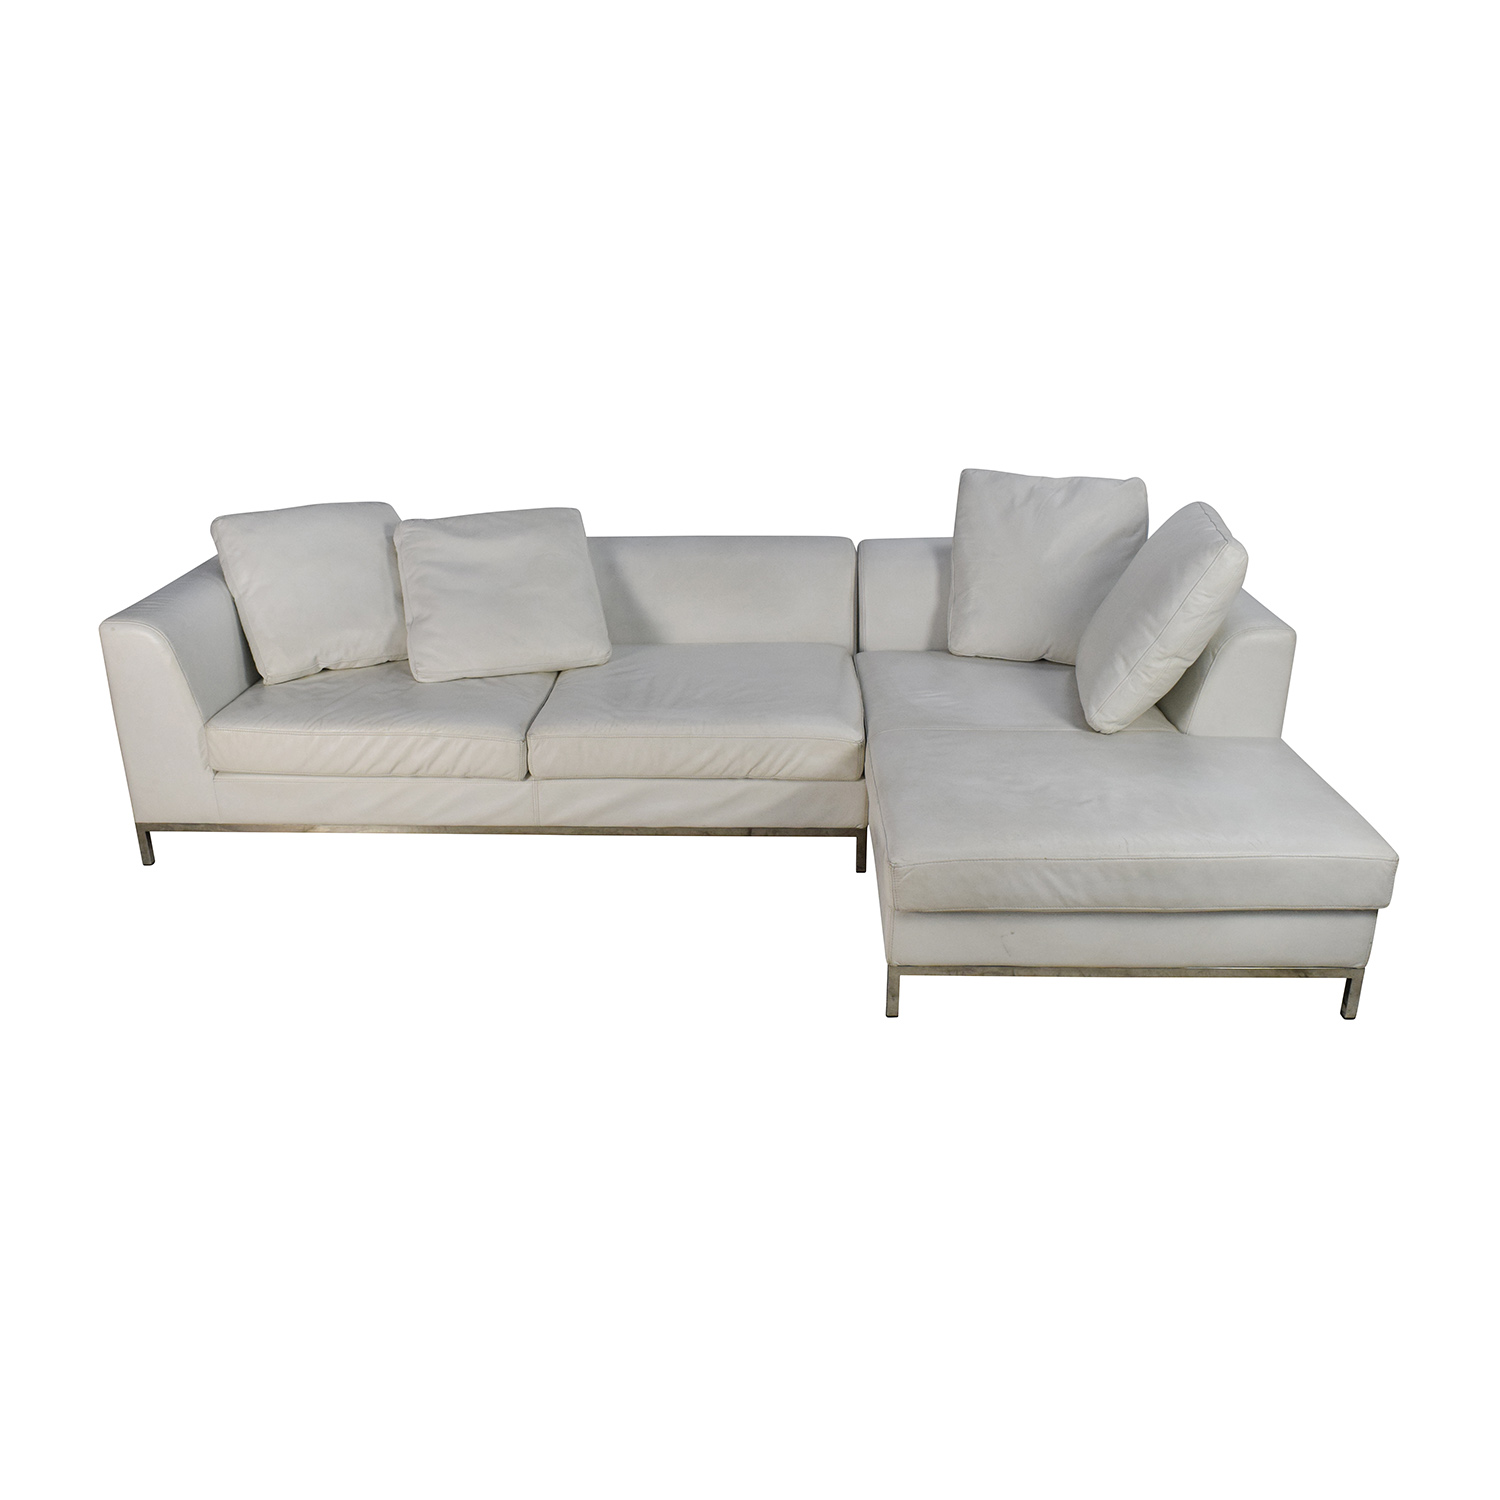 White Leather Sectional Couch on sale